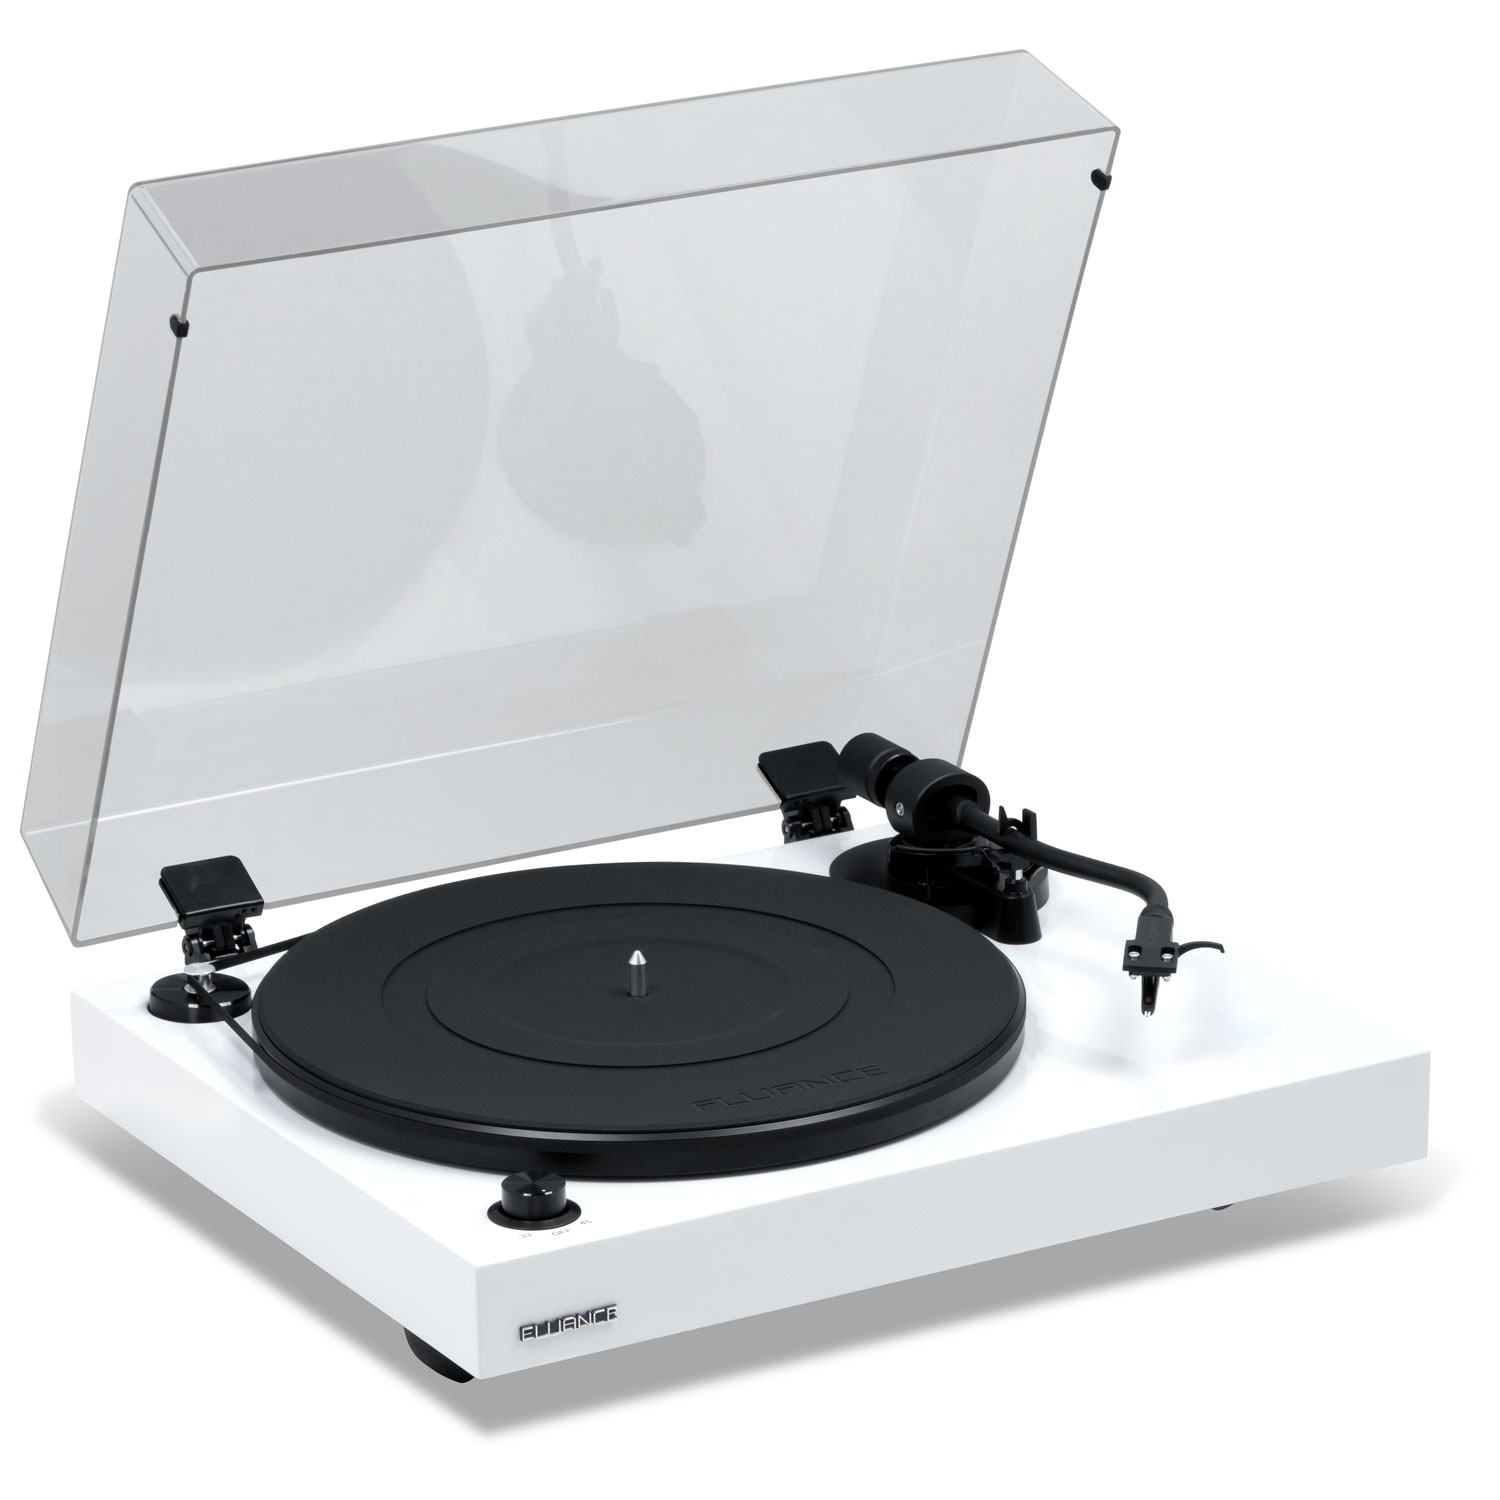 RT82W Reference High Fidelity Vinyl Turntable - Left View